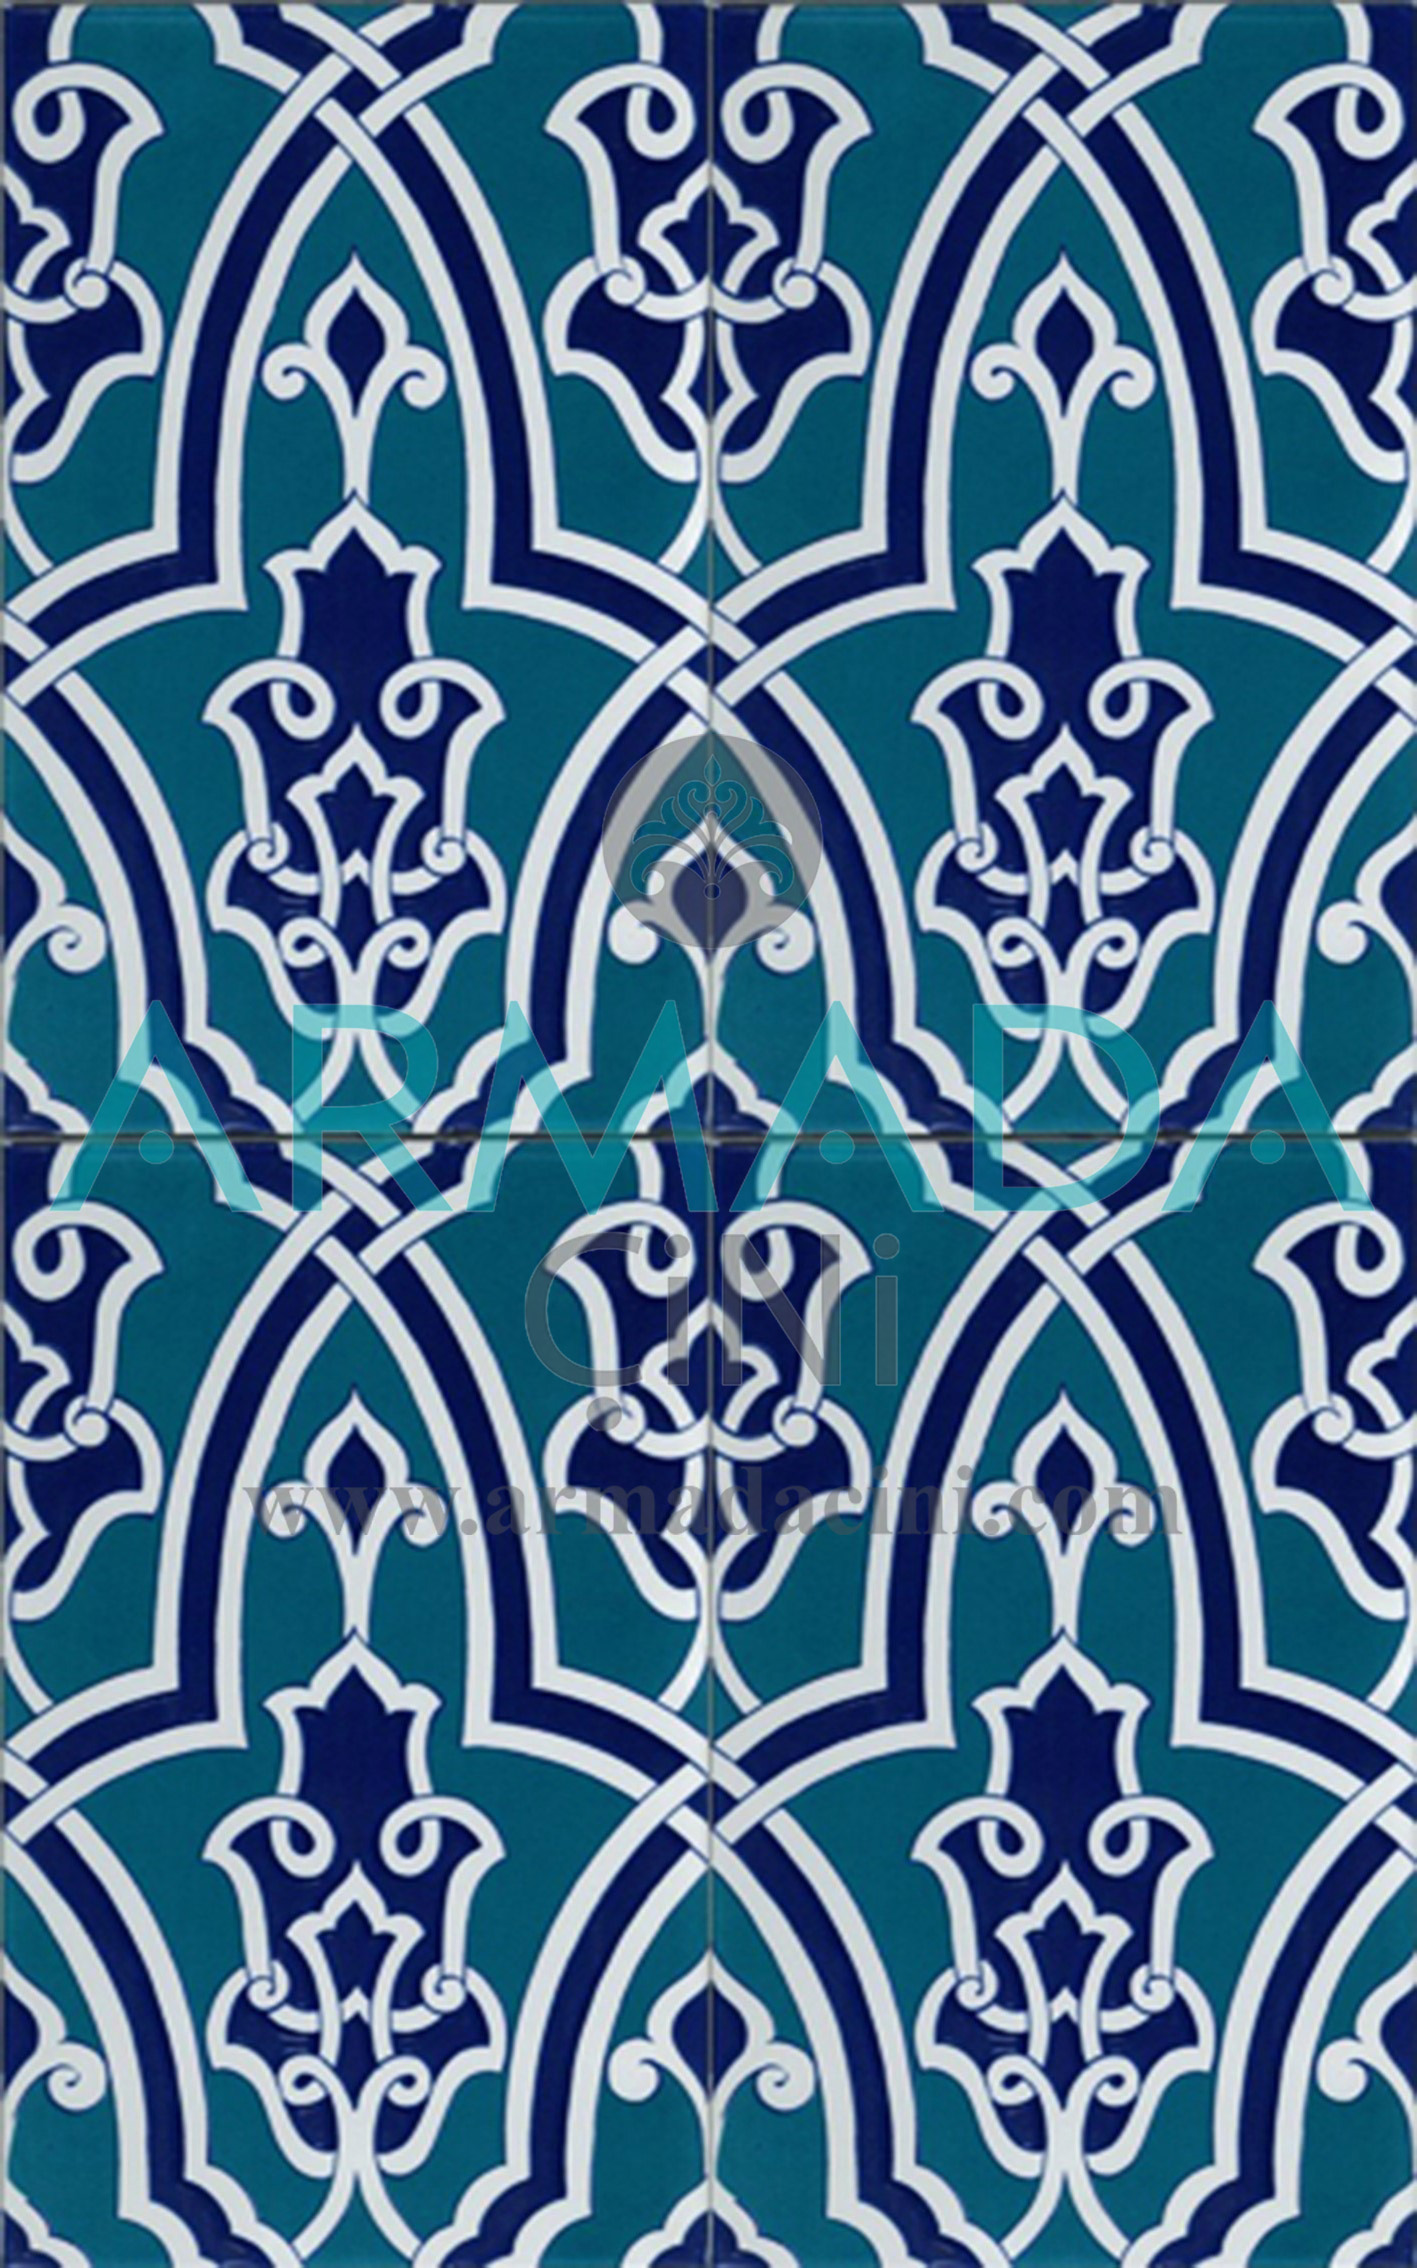 25x40 SP-406 Patterned Iznik Tile Tile Model (with Geometric Pattern)